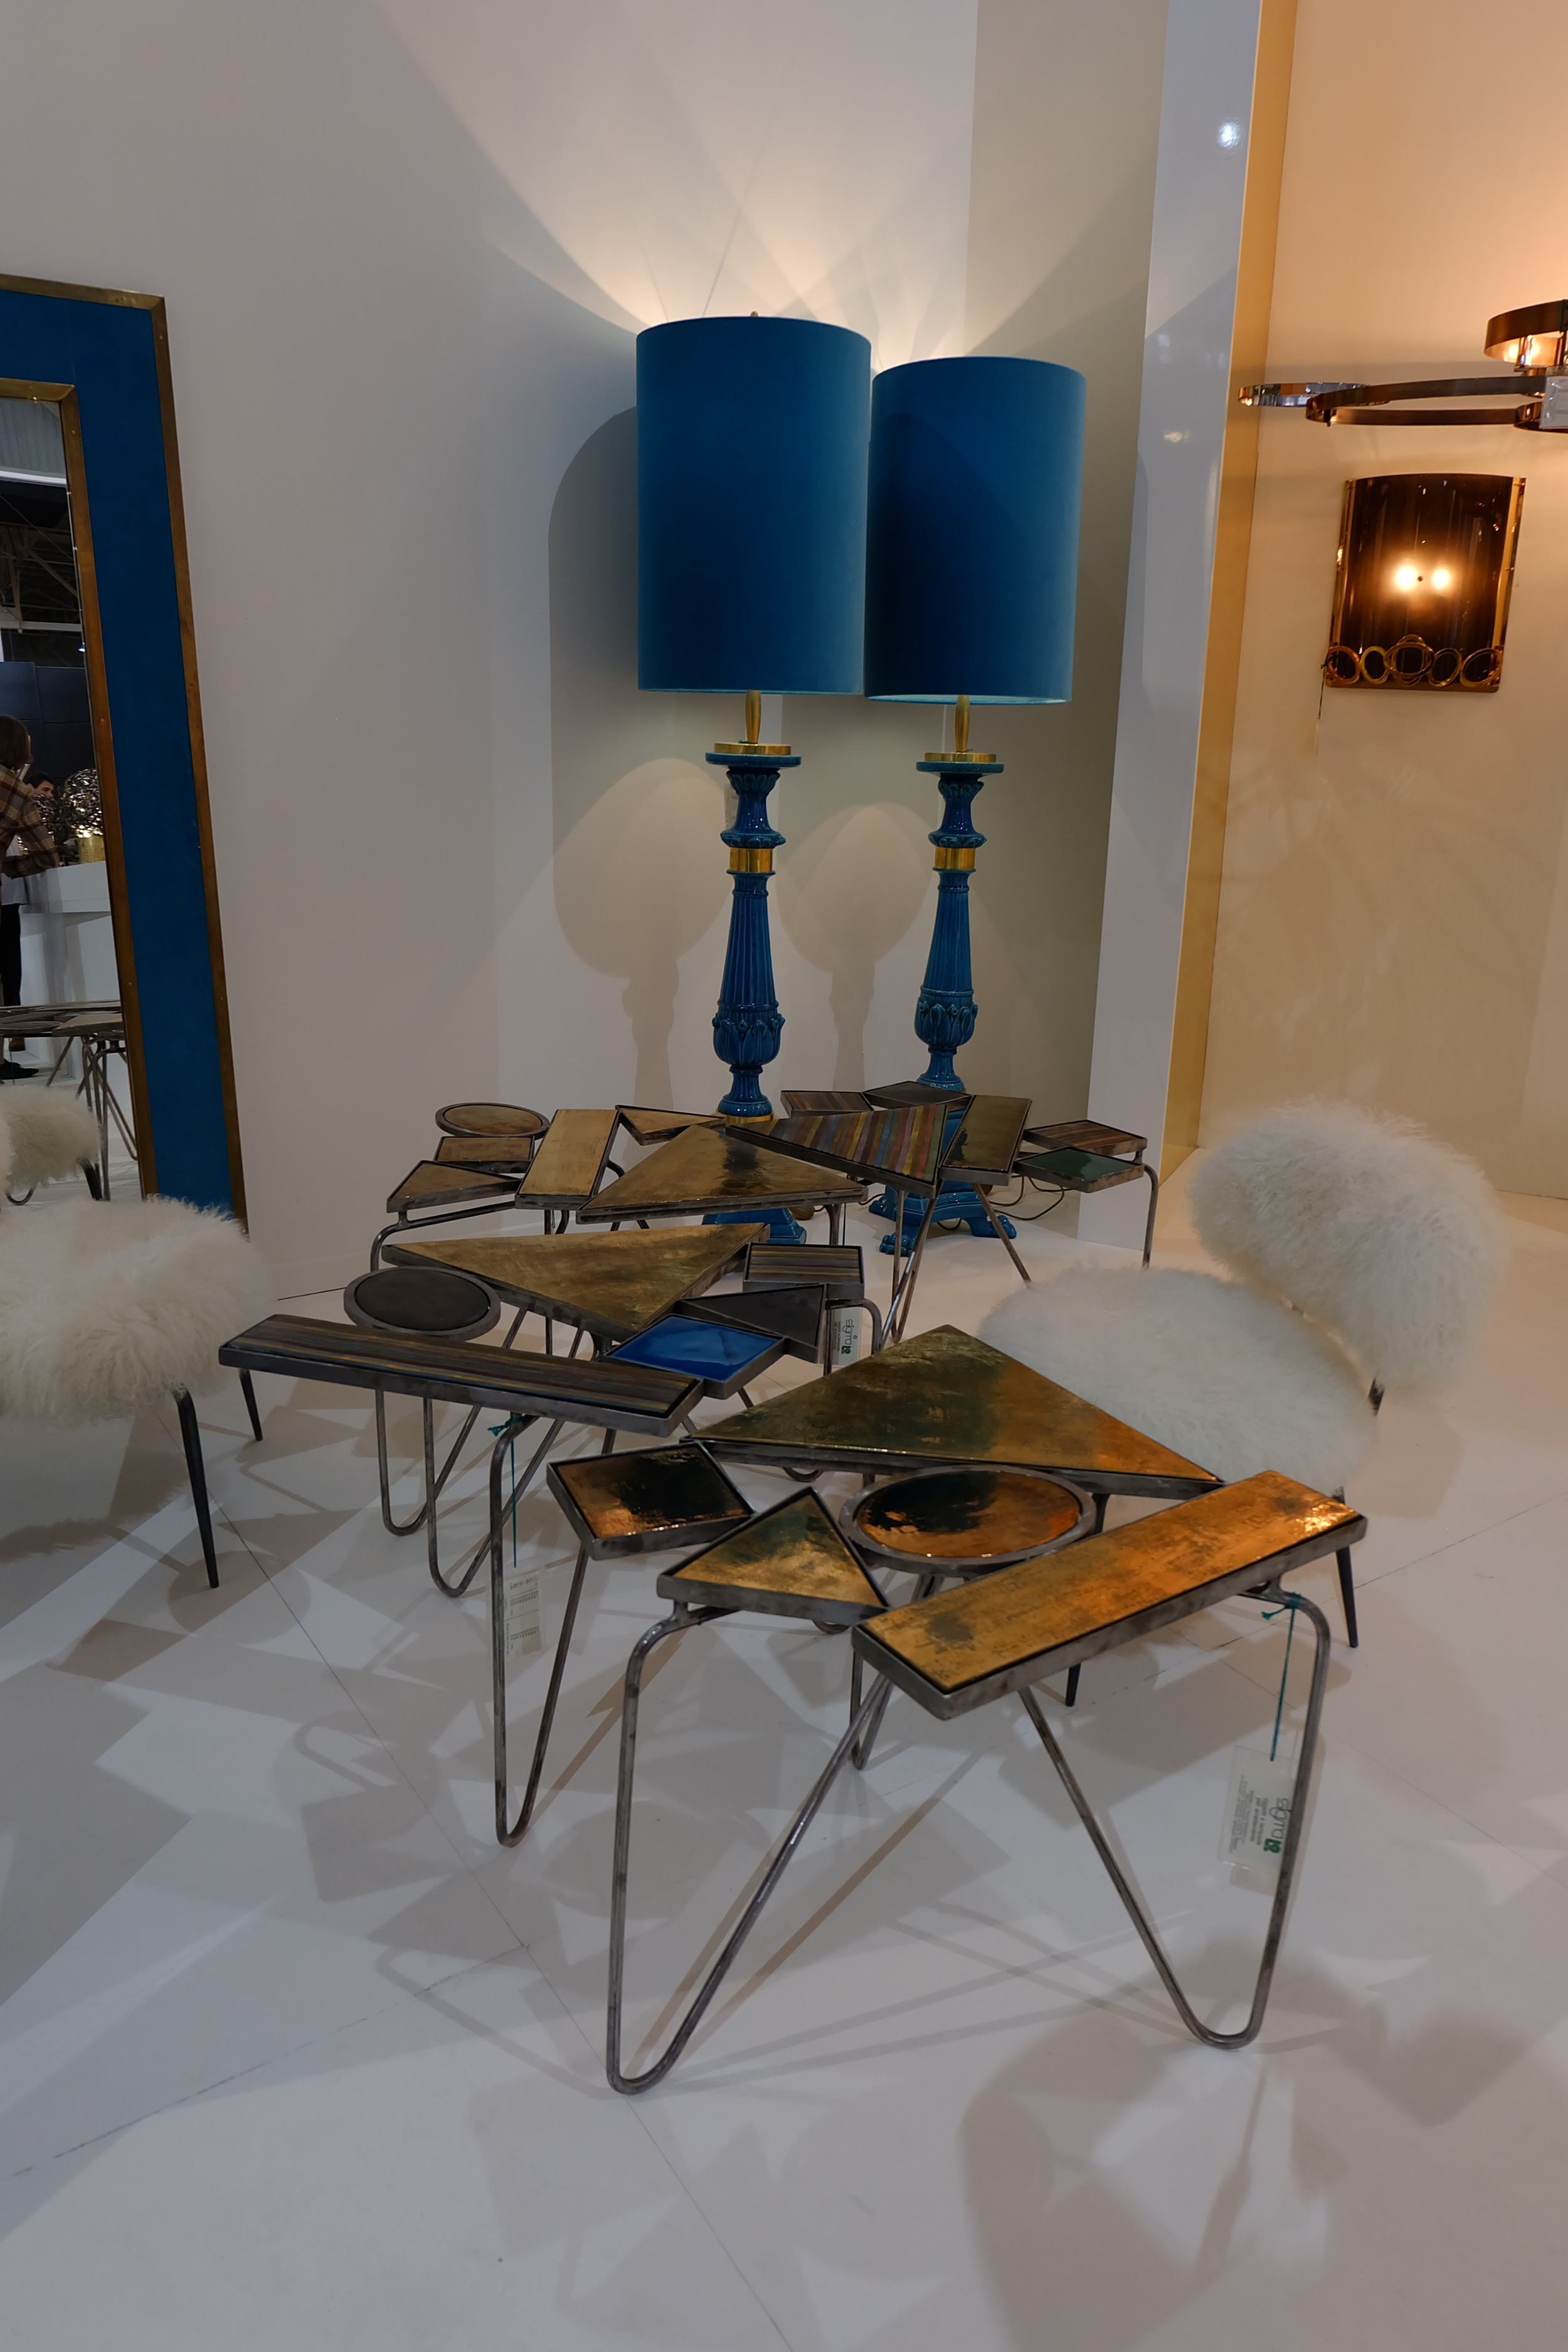 Maison & Objet 2016 Highlights - Side table with bronze feet | MSH Agency